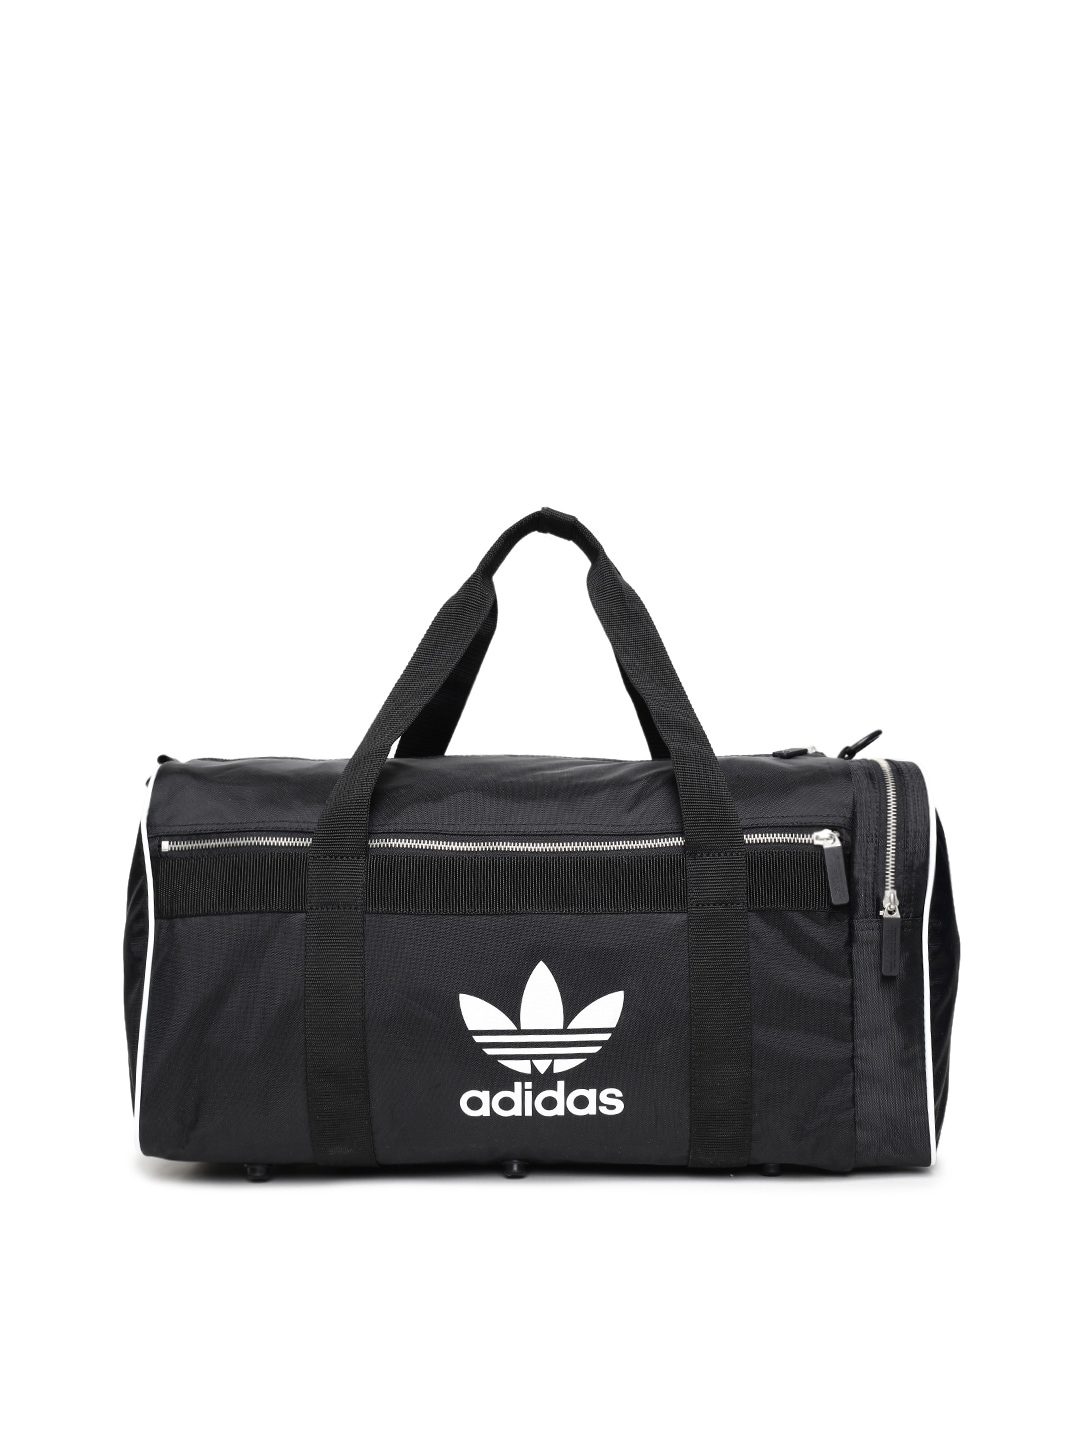 c256761e8b2f Adidas David Beckham Tights Bags - Buy Adidas David Beckham Tights Bags  online in India